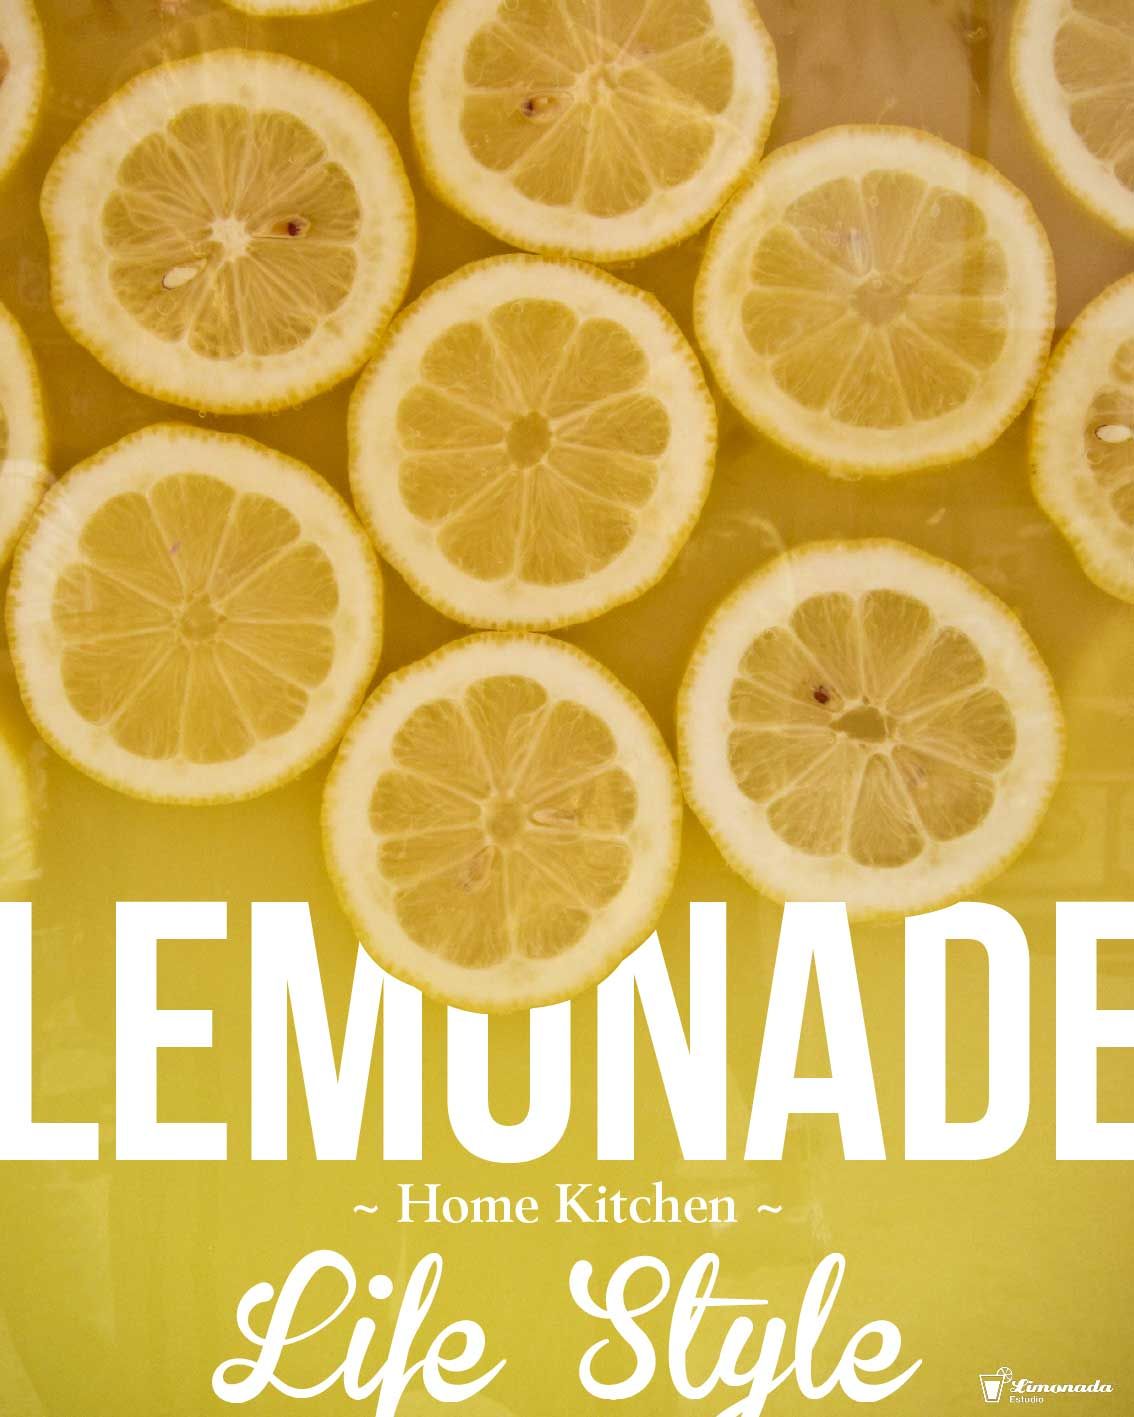 2 - Lemonade Home Kitchen Life Style